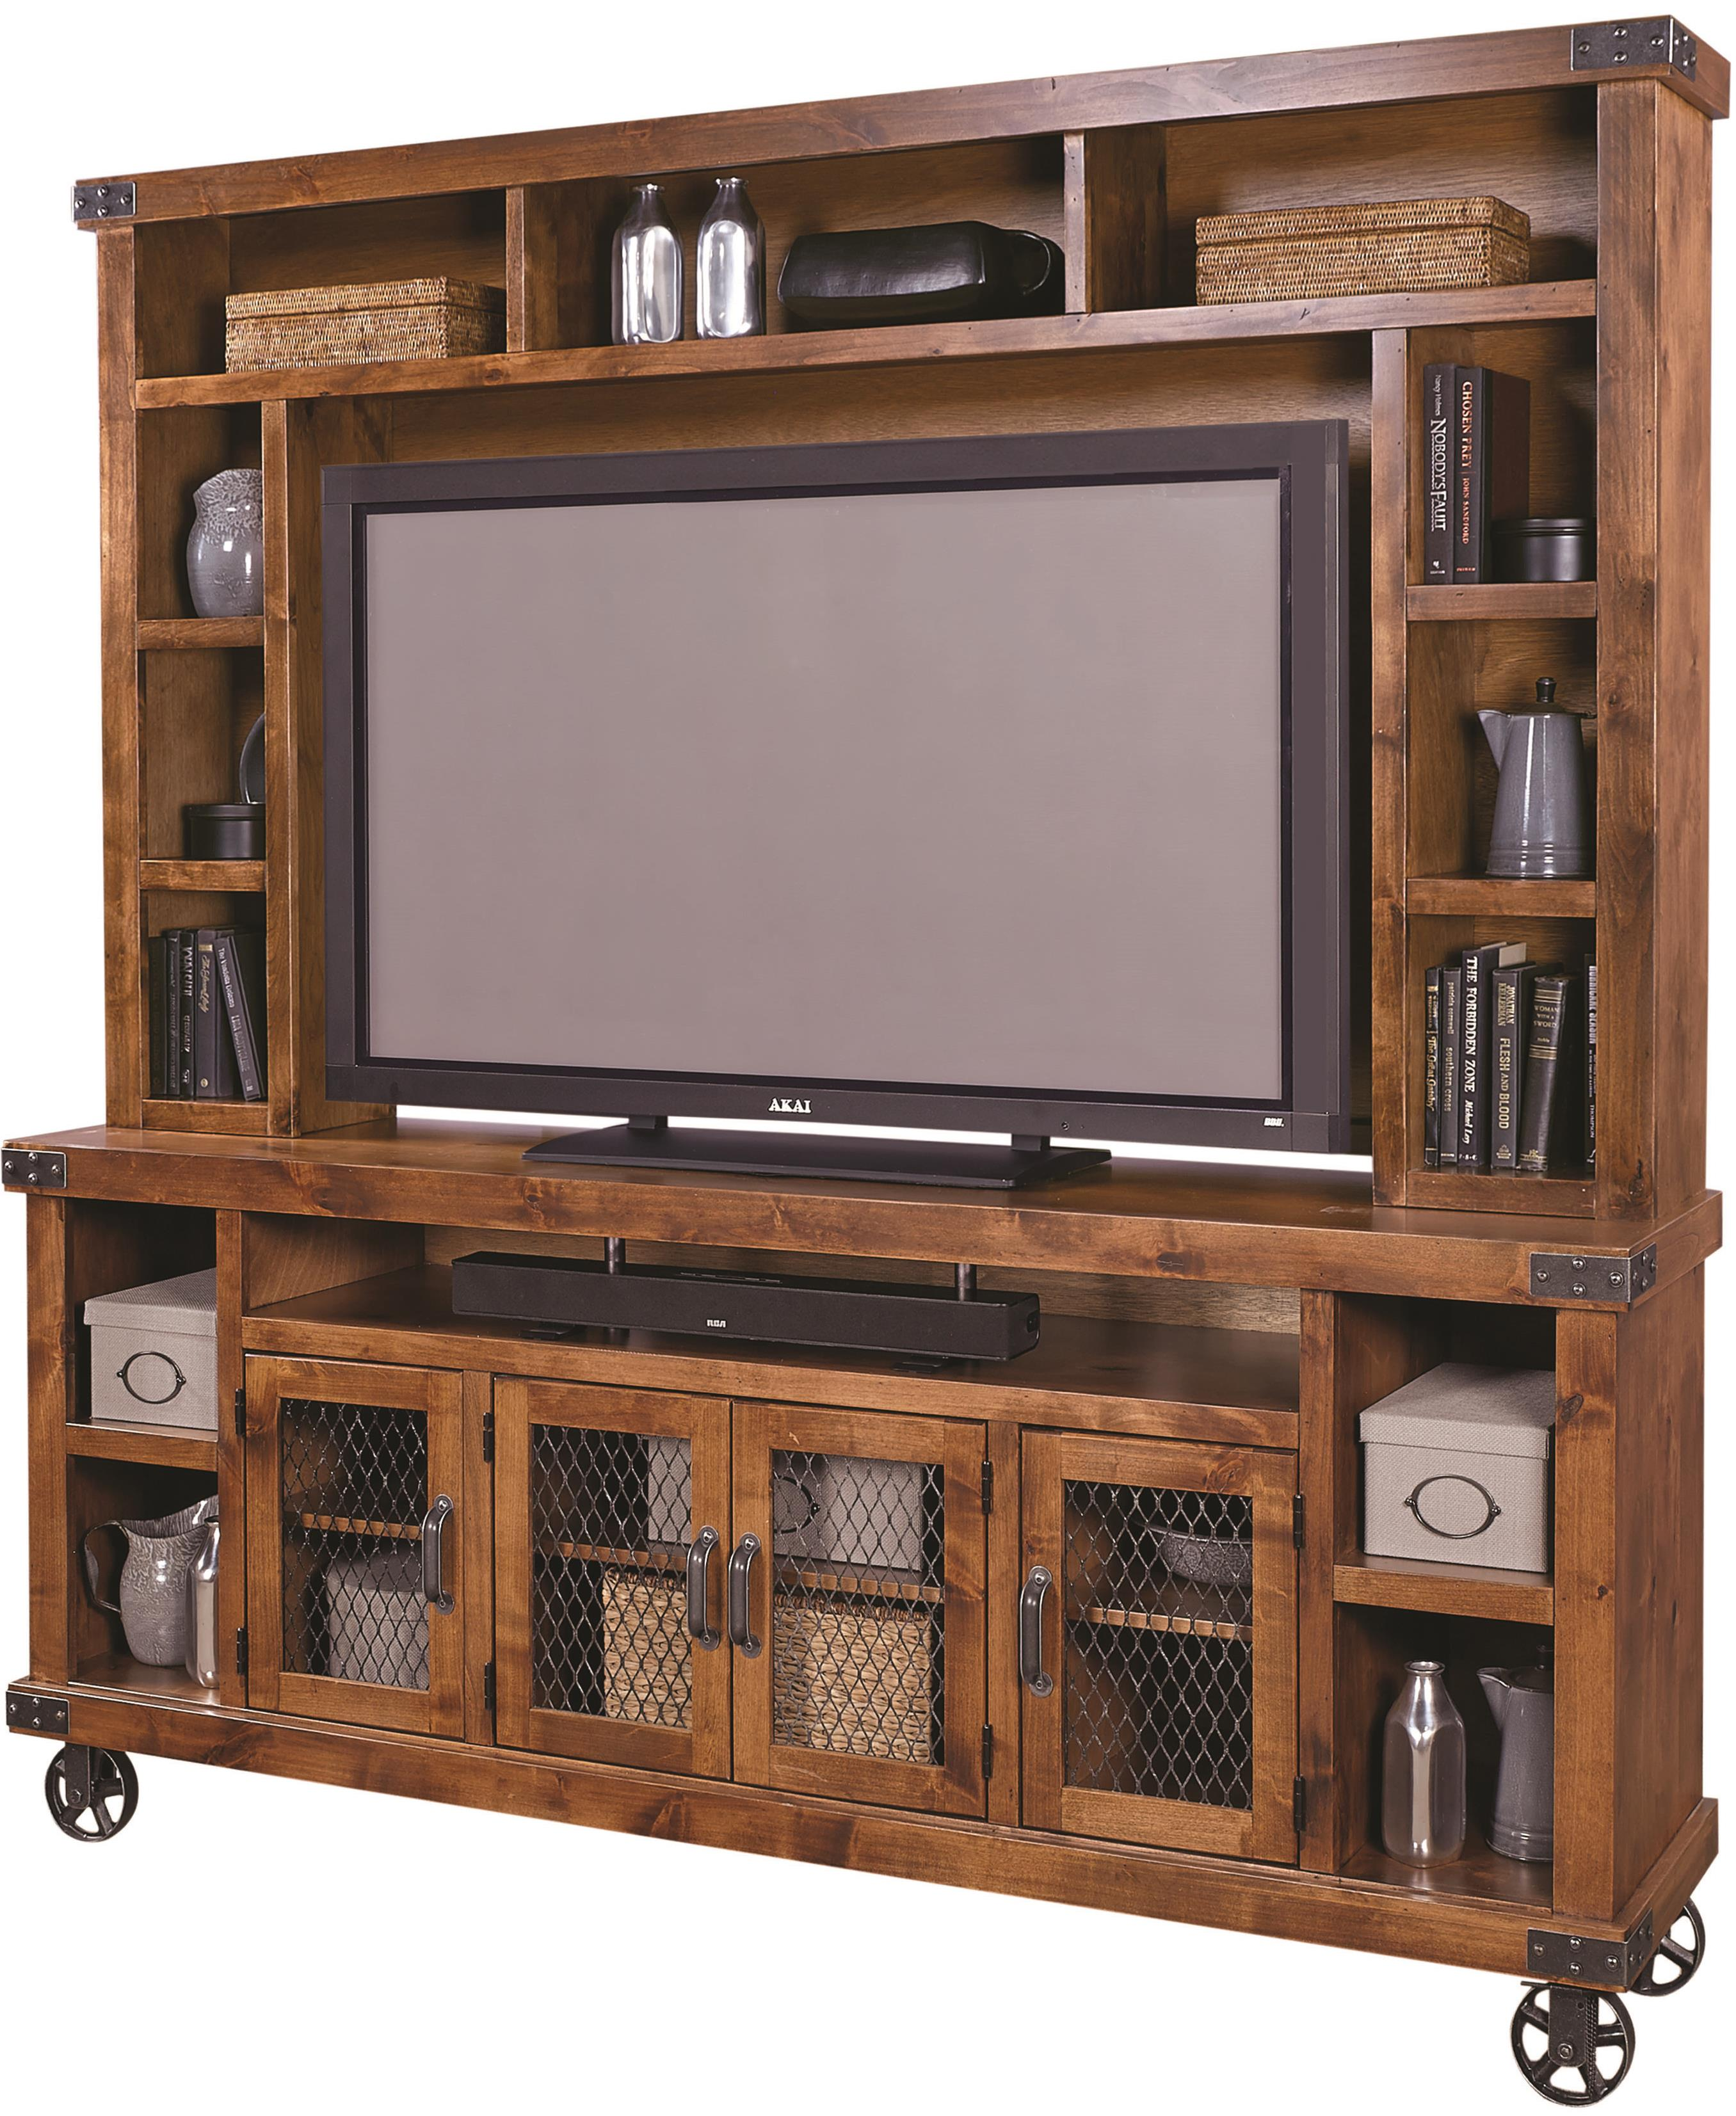 "Industrial 84"" Console with Hutch by Aspenhome at Stoney Creek Furniture"